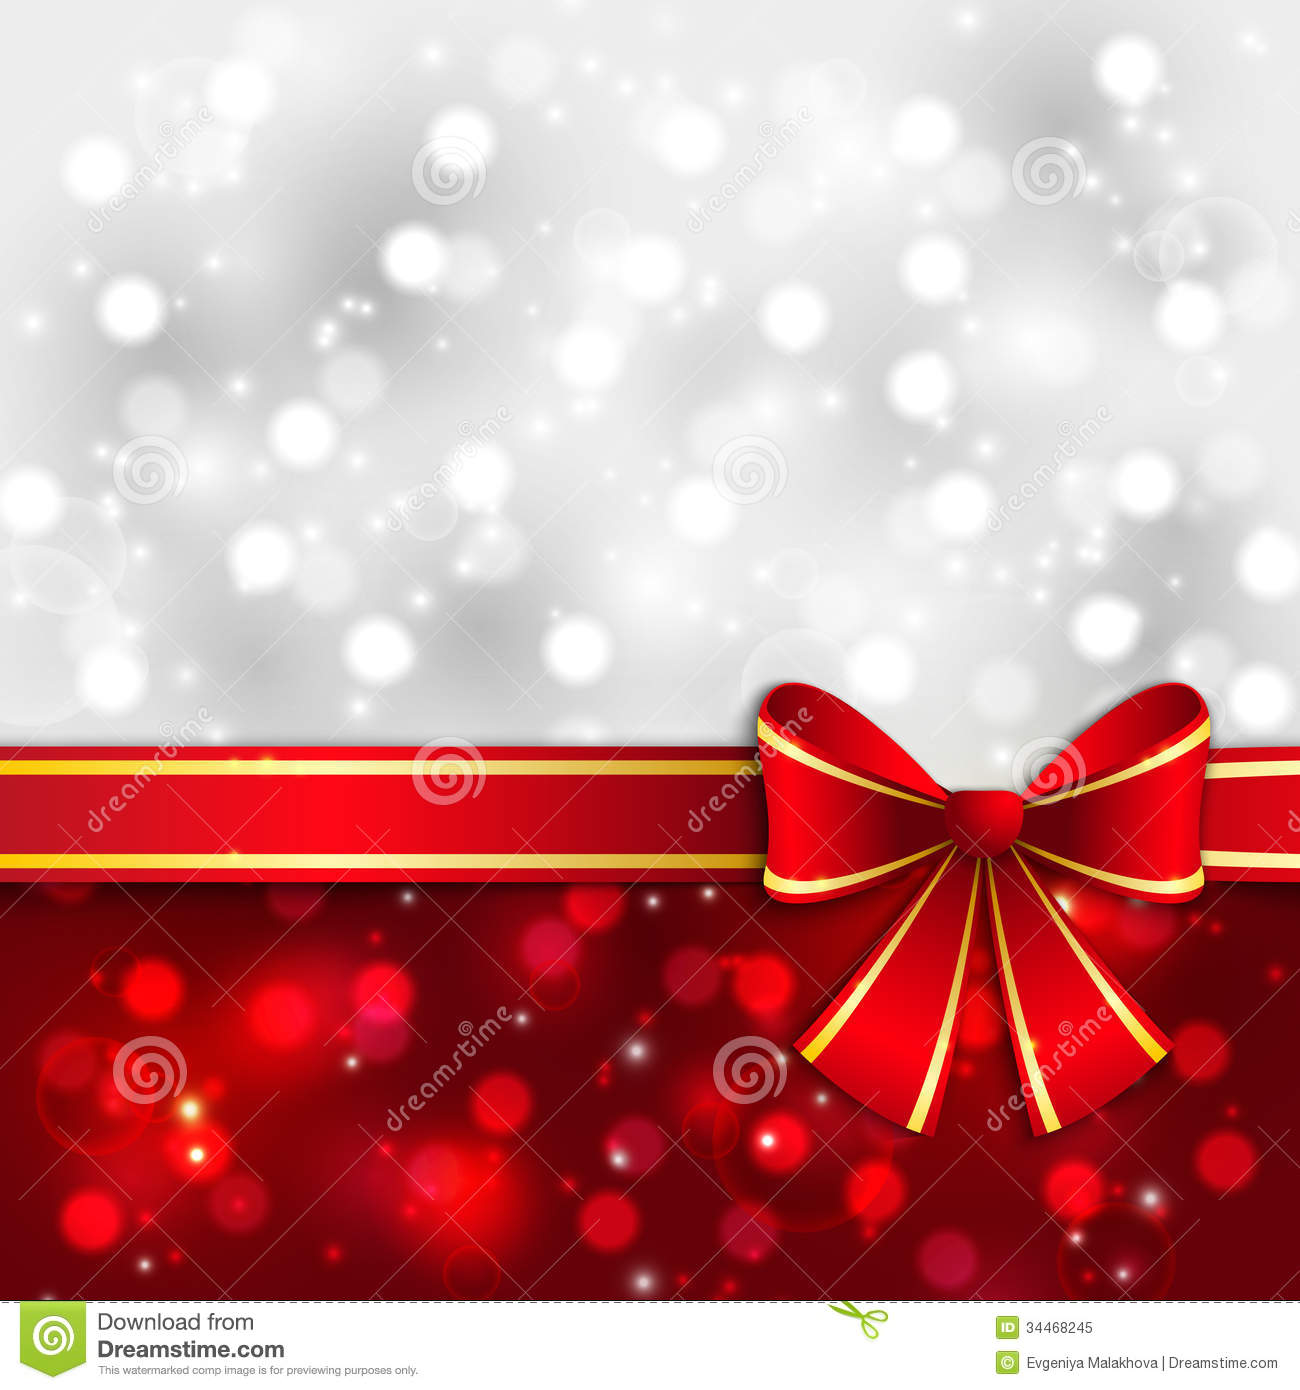 Christmas Backgrounds Free Page 1